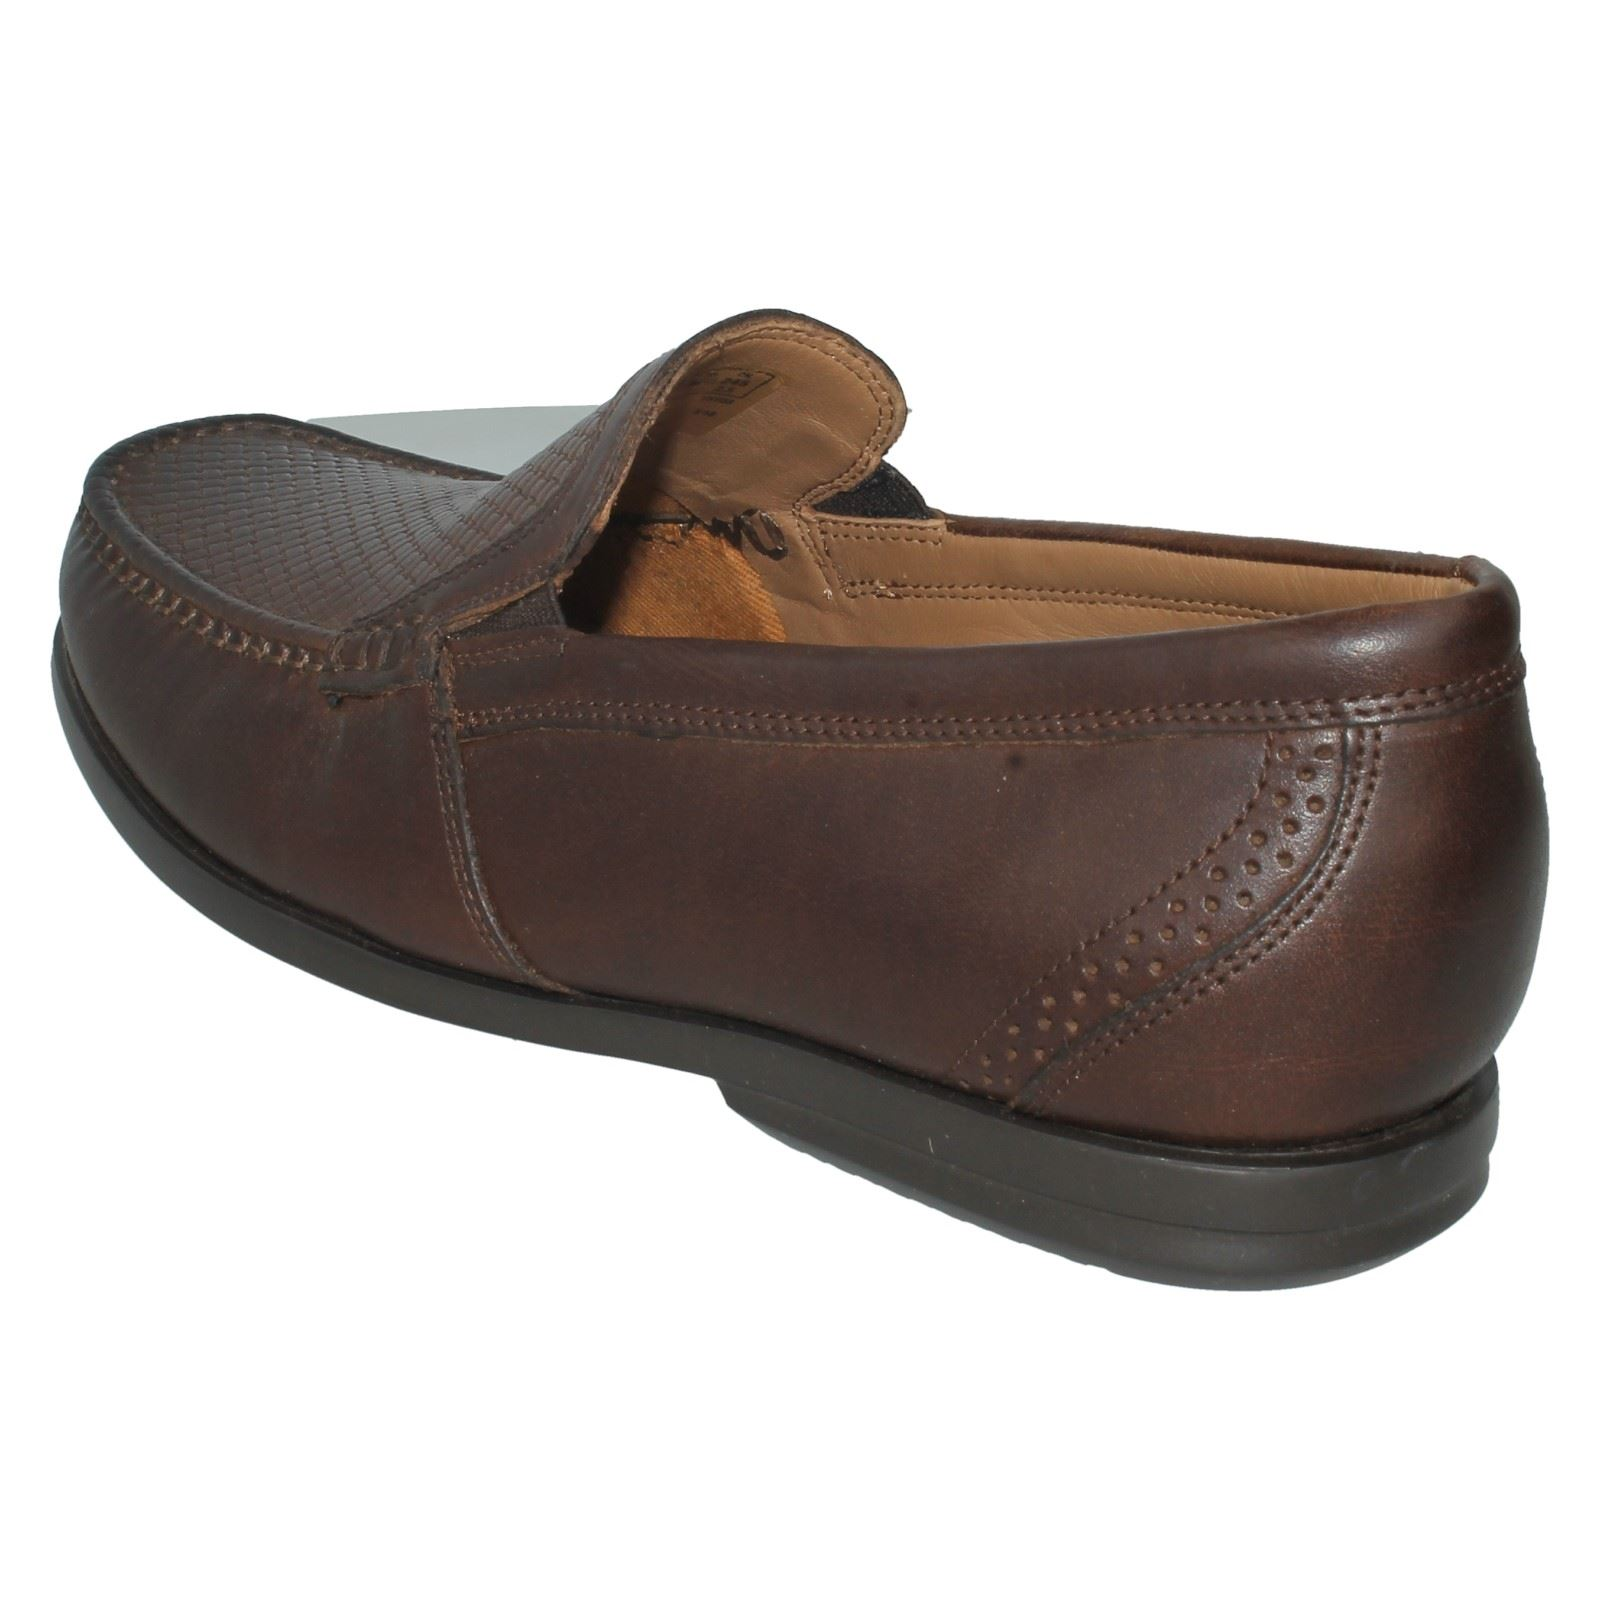 Mens Unstructured by Clarks Leather Slip On Smart Shoes Un Gala Free